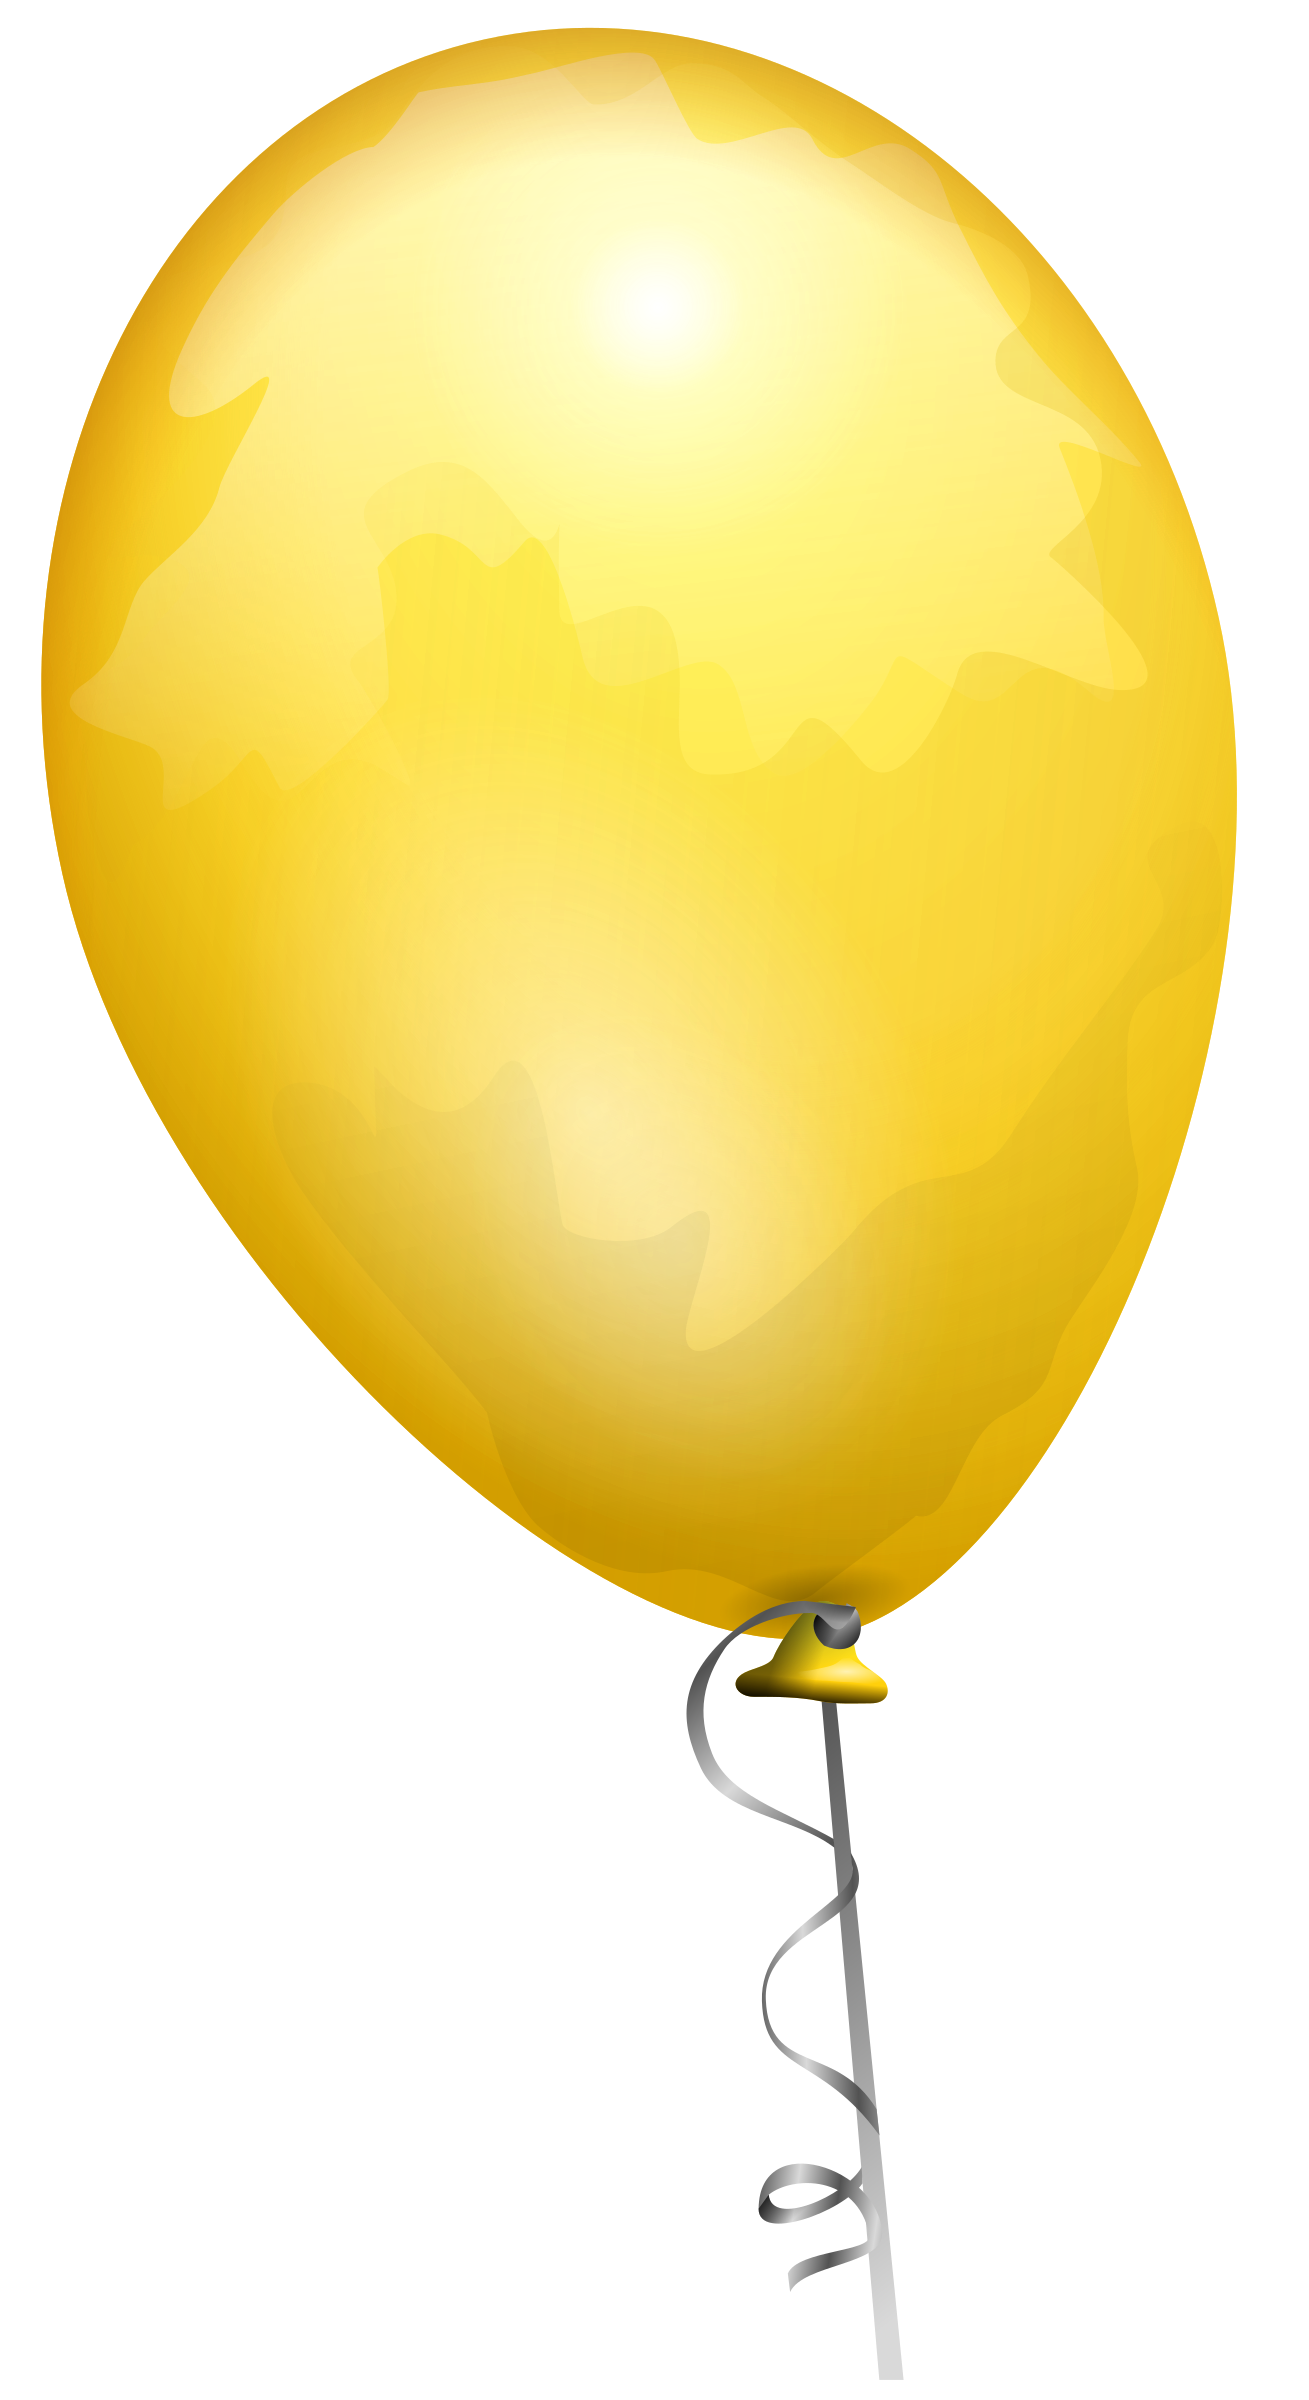 transparent download Balloon big image png. 5 clipart yellow